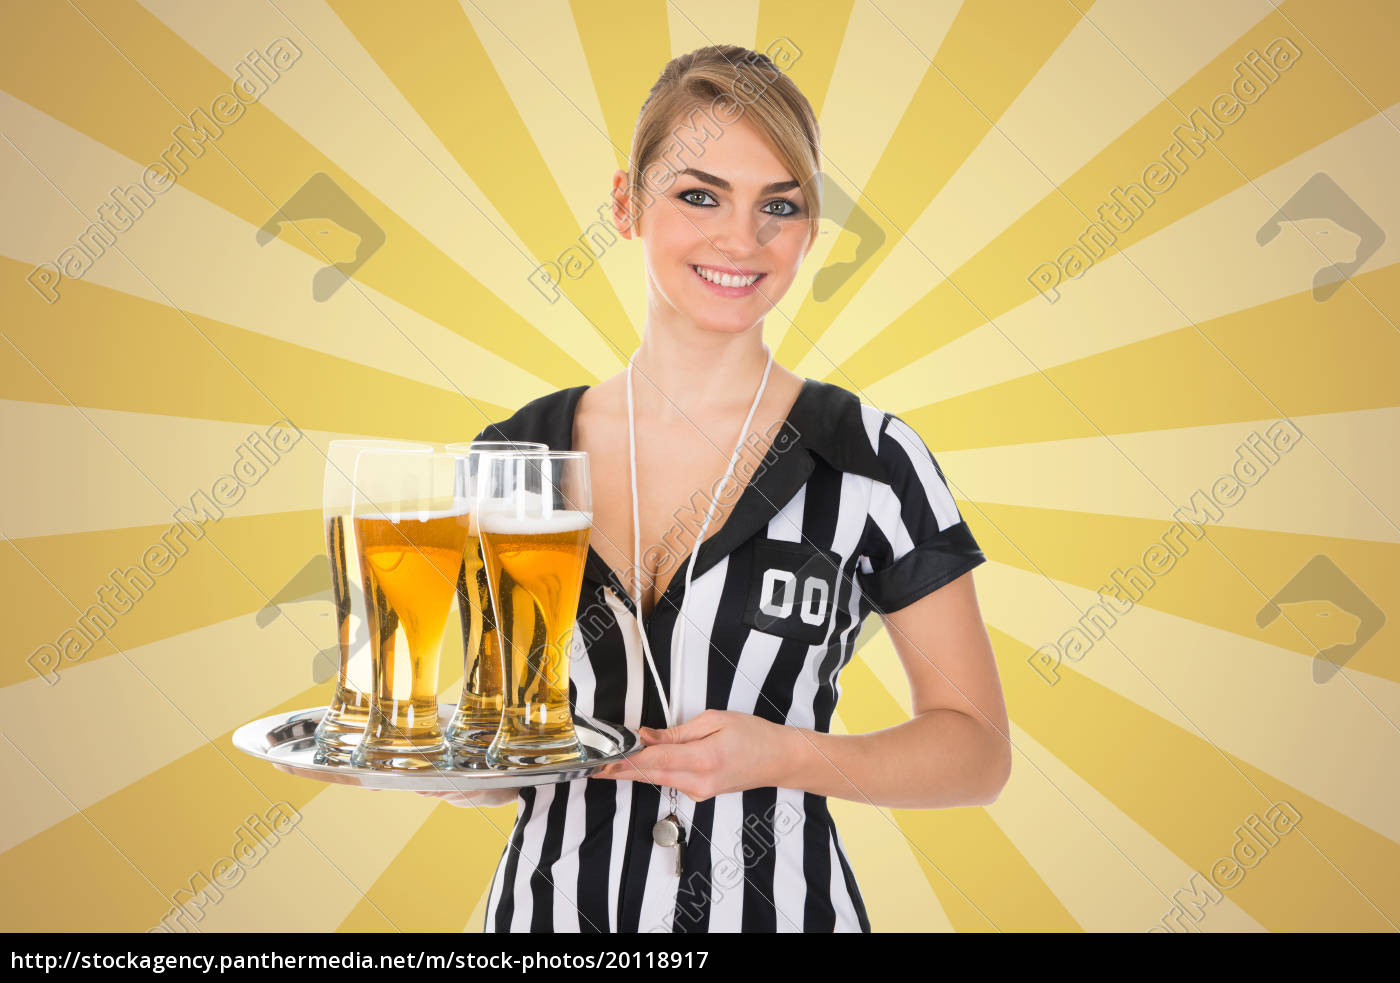 female, referee, holding, tray, with, beer - 20118917